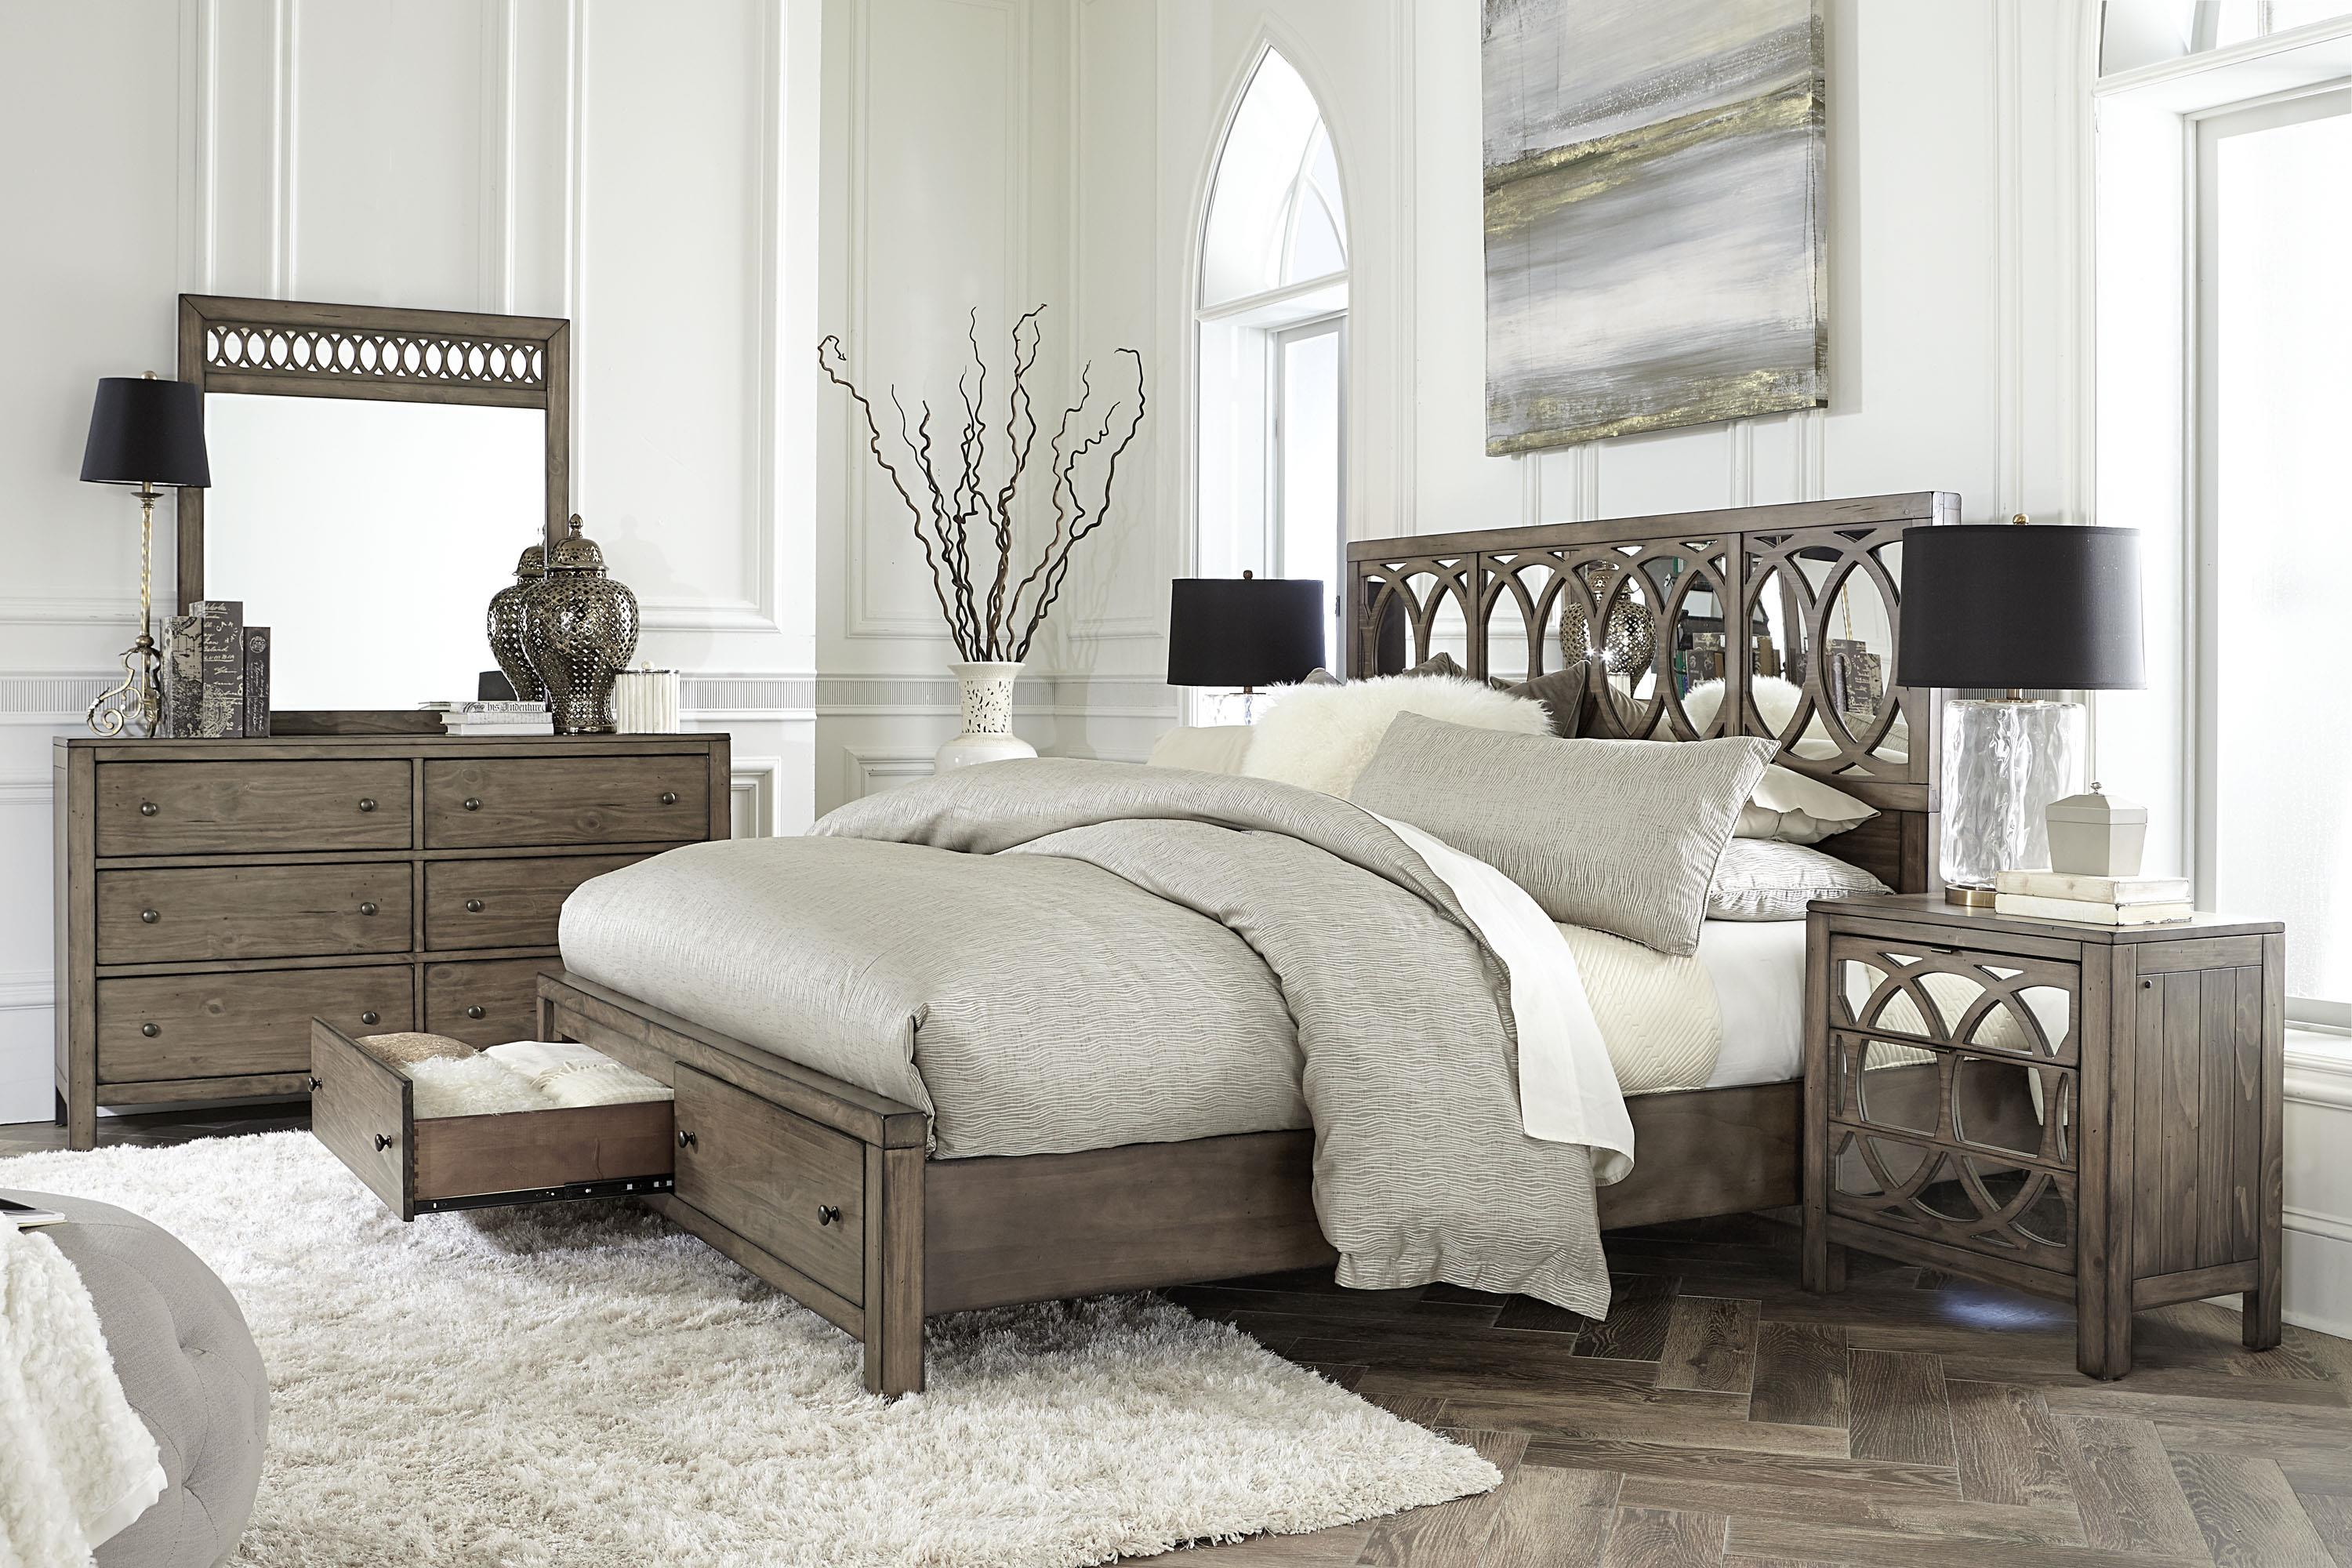 Aspenhome Tildon California King Bedroom Group - Item Number: I56 CK Bedroom Group 2